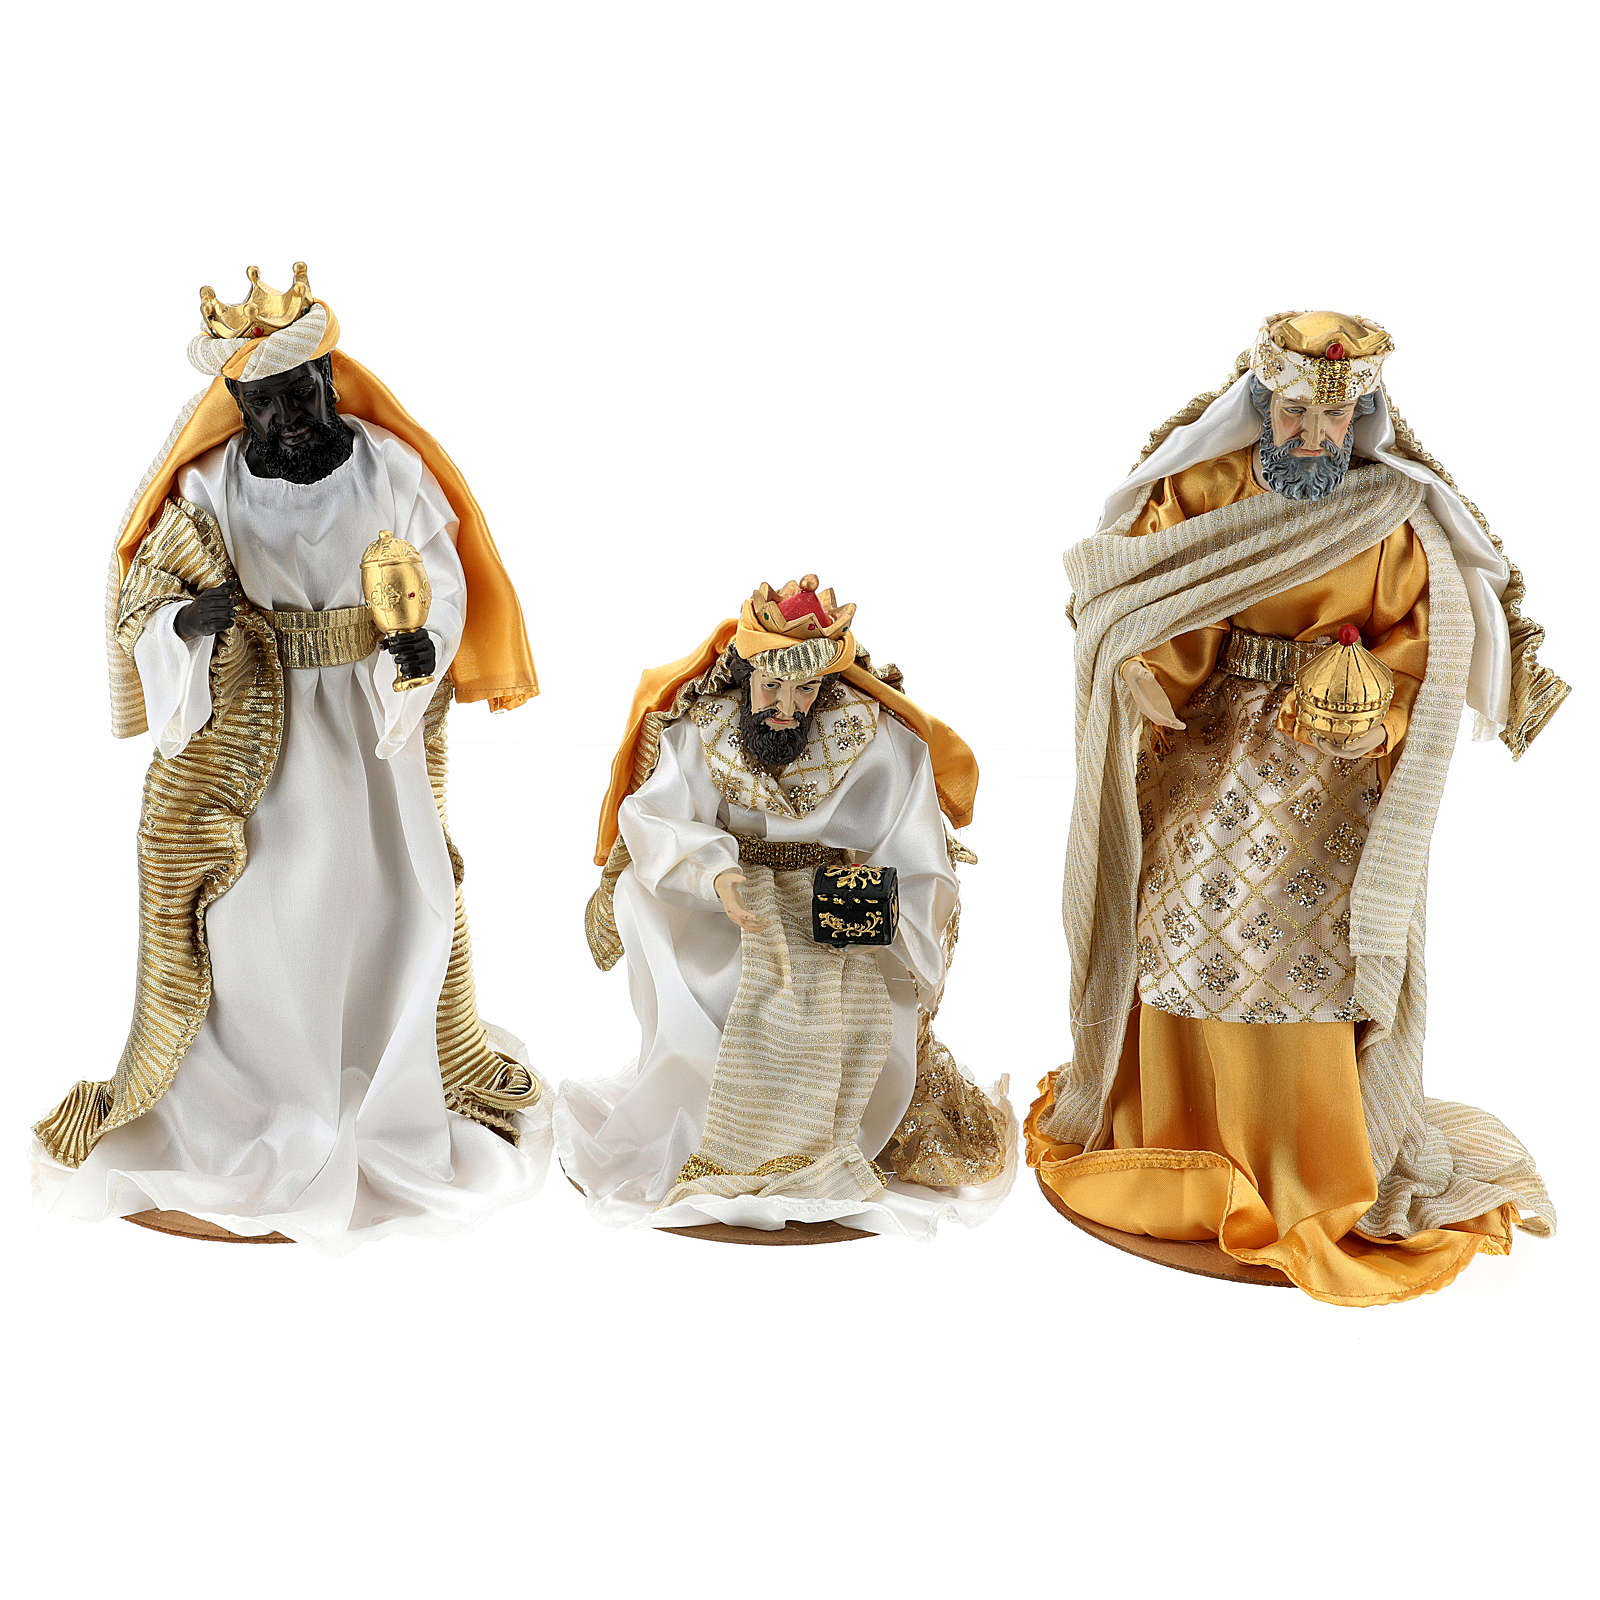 Complete Nativity scene set in painted resin, 10 characters, 40 cm 4